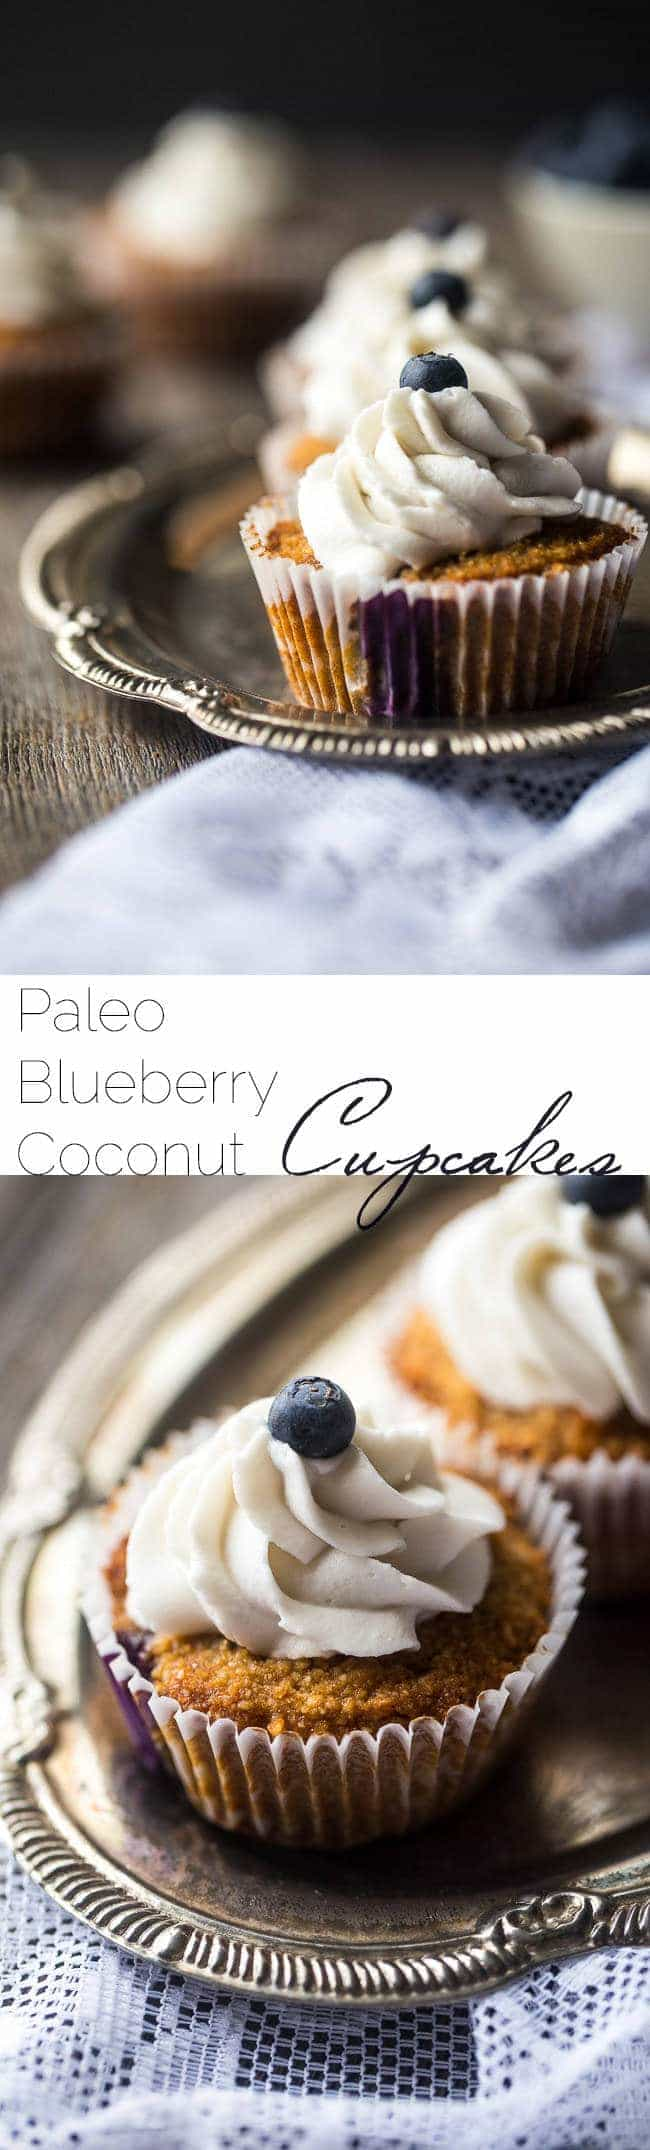 Blueberry Gluten Free Cupcakes with Coconut Cream – These cupcakes mixed with fresh blueberries and topped with coconut cream are a healthier, Paleo-friendly dessert that is perfect for Summer! | Foodfaithfitness.com | @FoodFaithFit